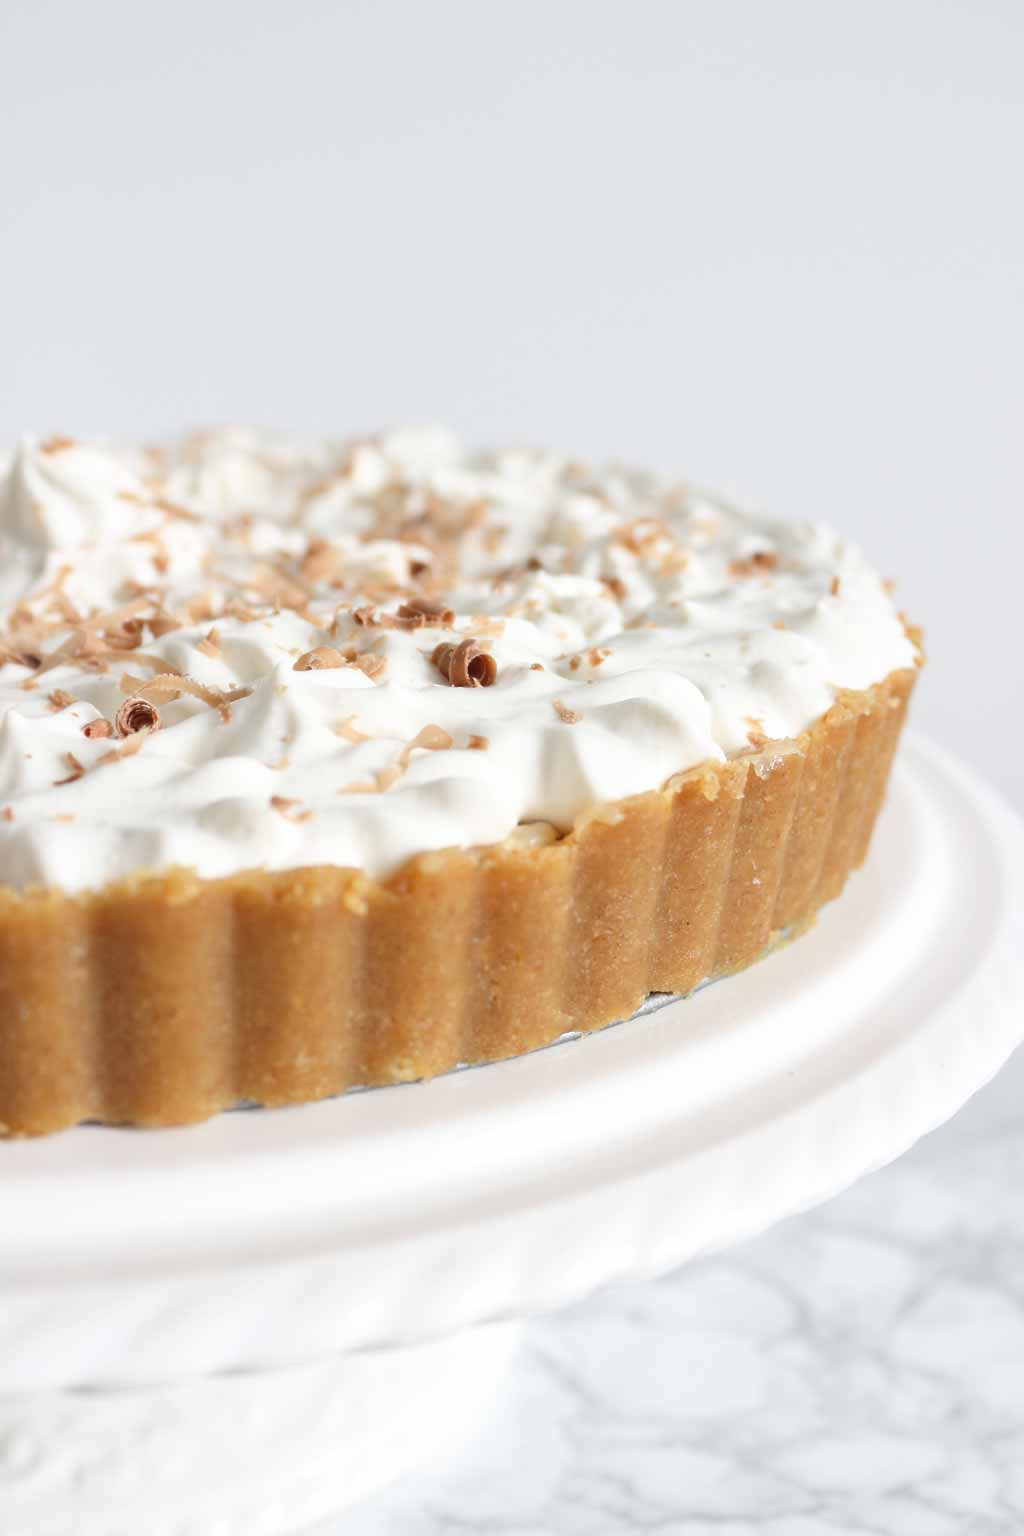 Best vegan desserts- Close Up of Banoffee Pie